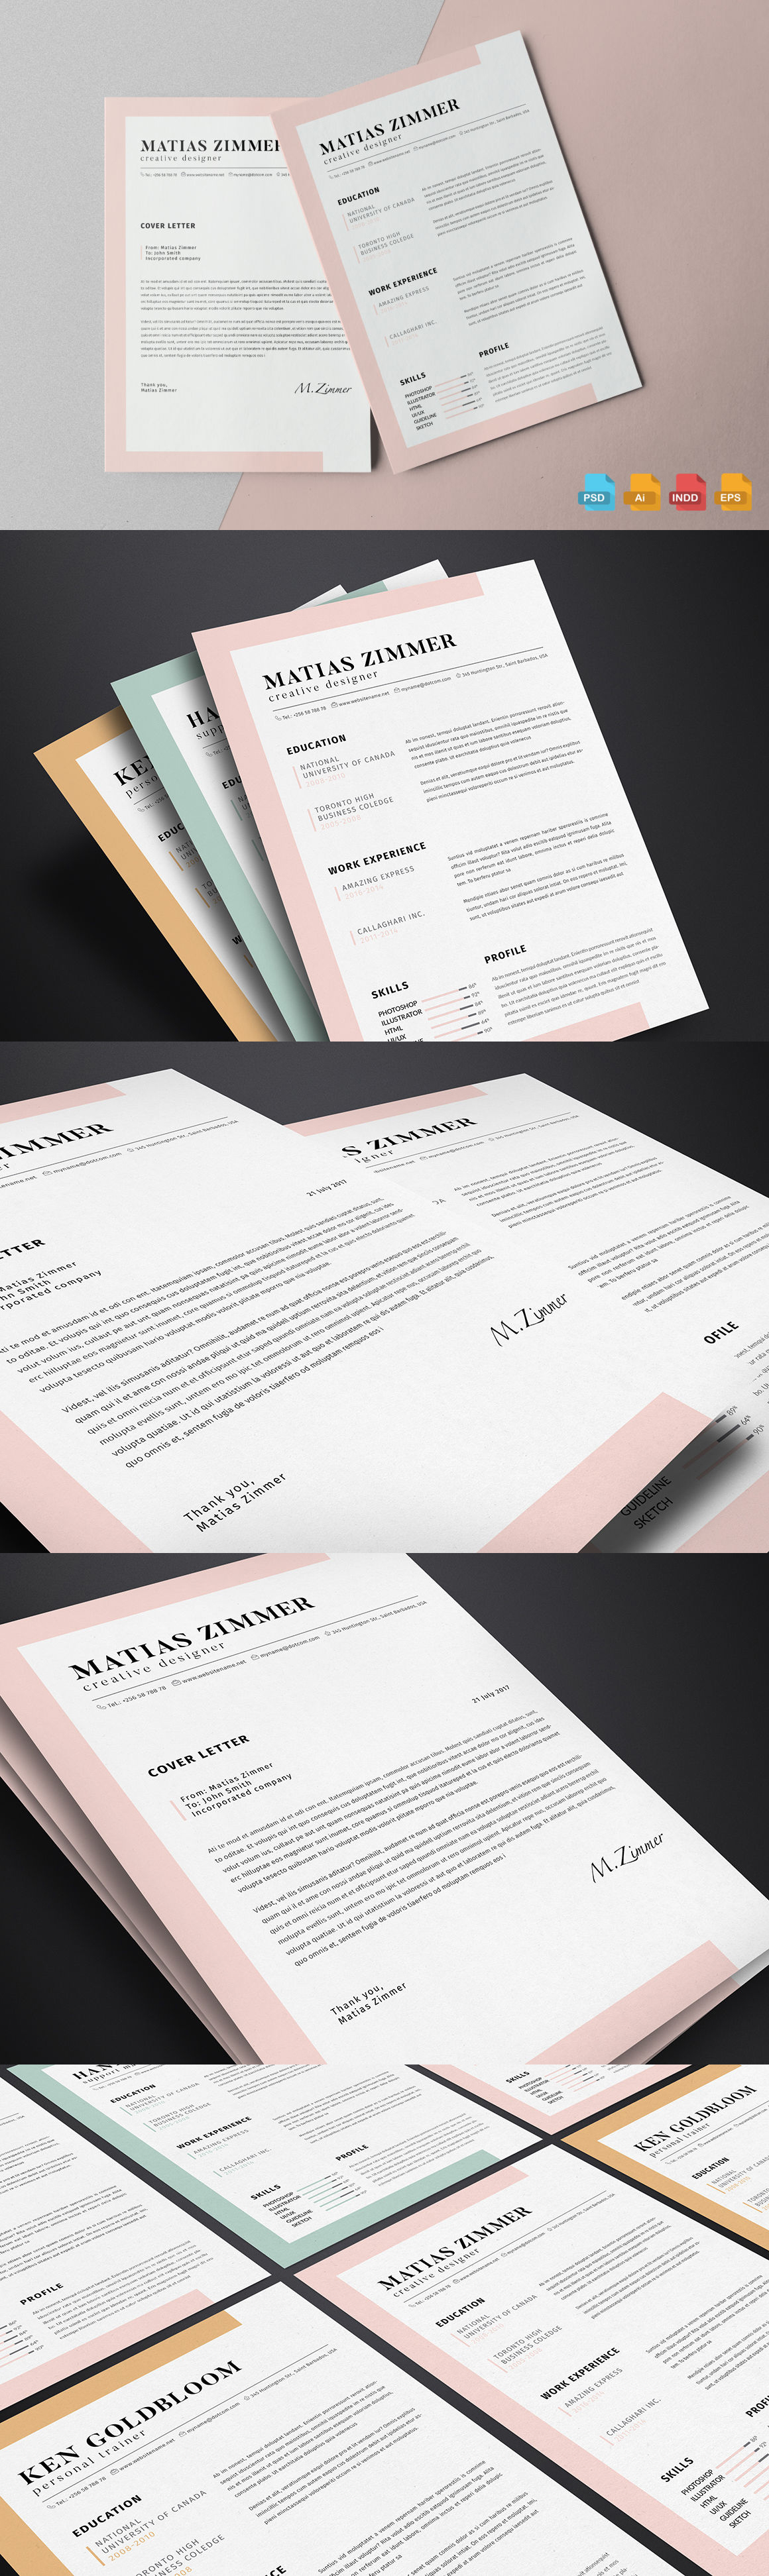 Clean Resume Template AI, EPS, INDD, PSD | Resume Templates ...